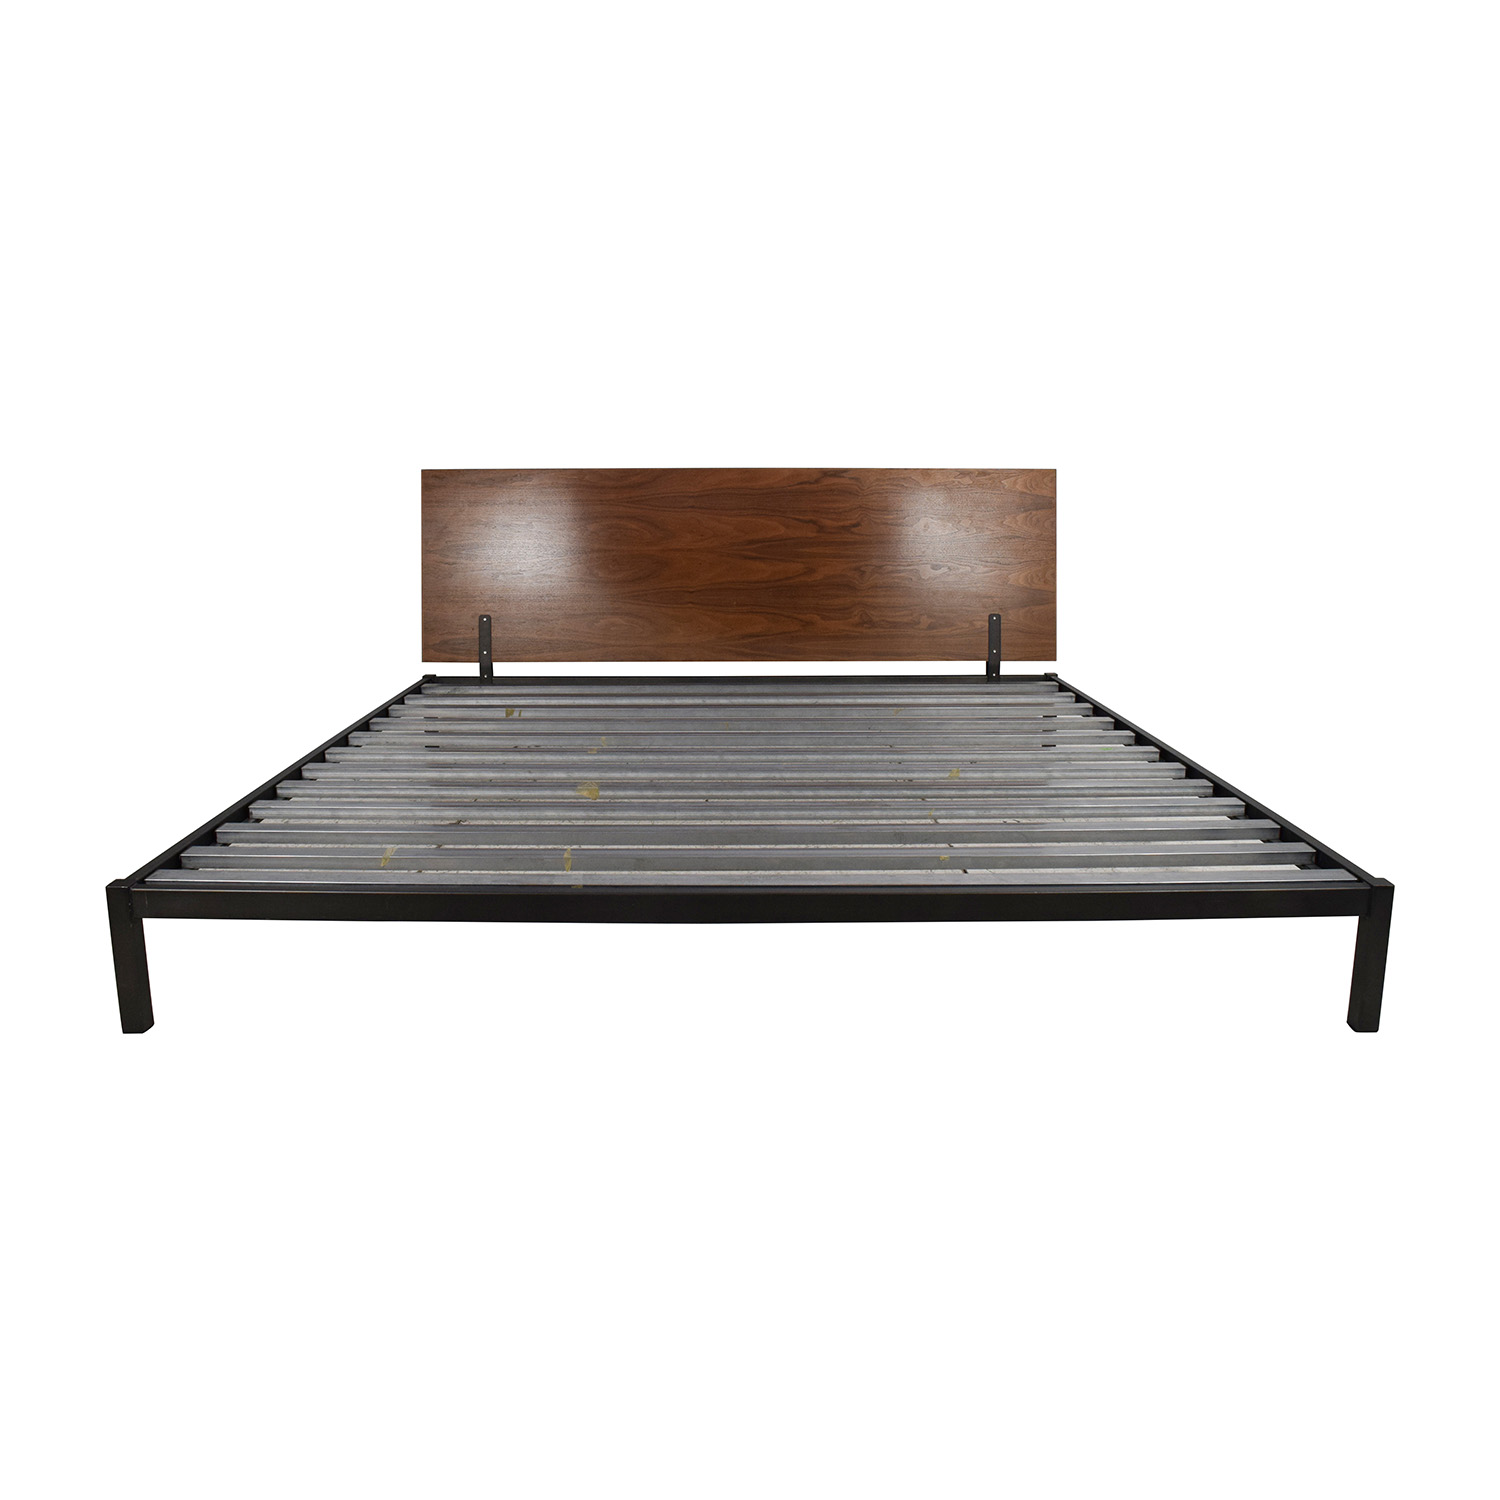 Room and Board Room & Board Copenhagen King Size Bed Bed Frames